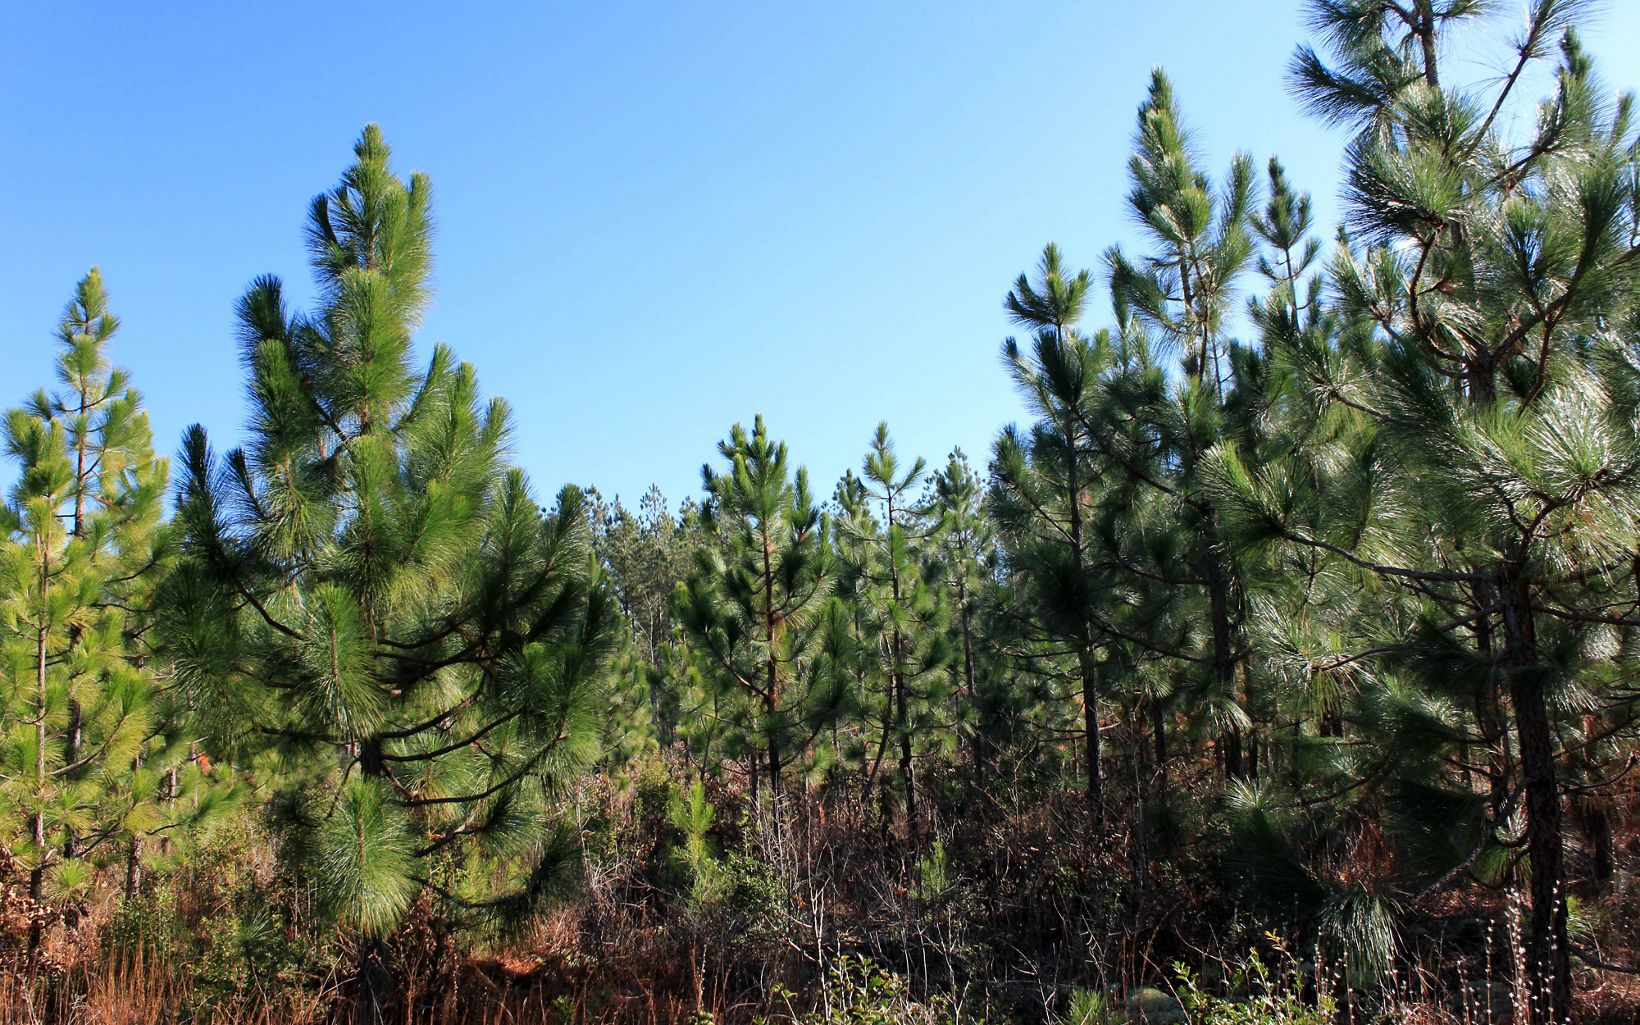 A stand of longleaf saplings at Raccoon Creek Pinelands, Virginia.